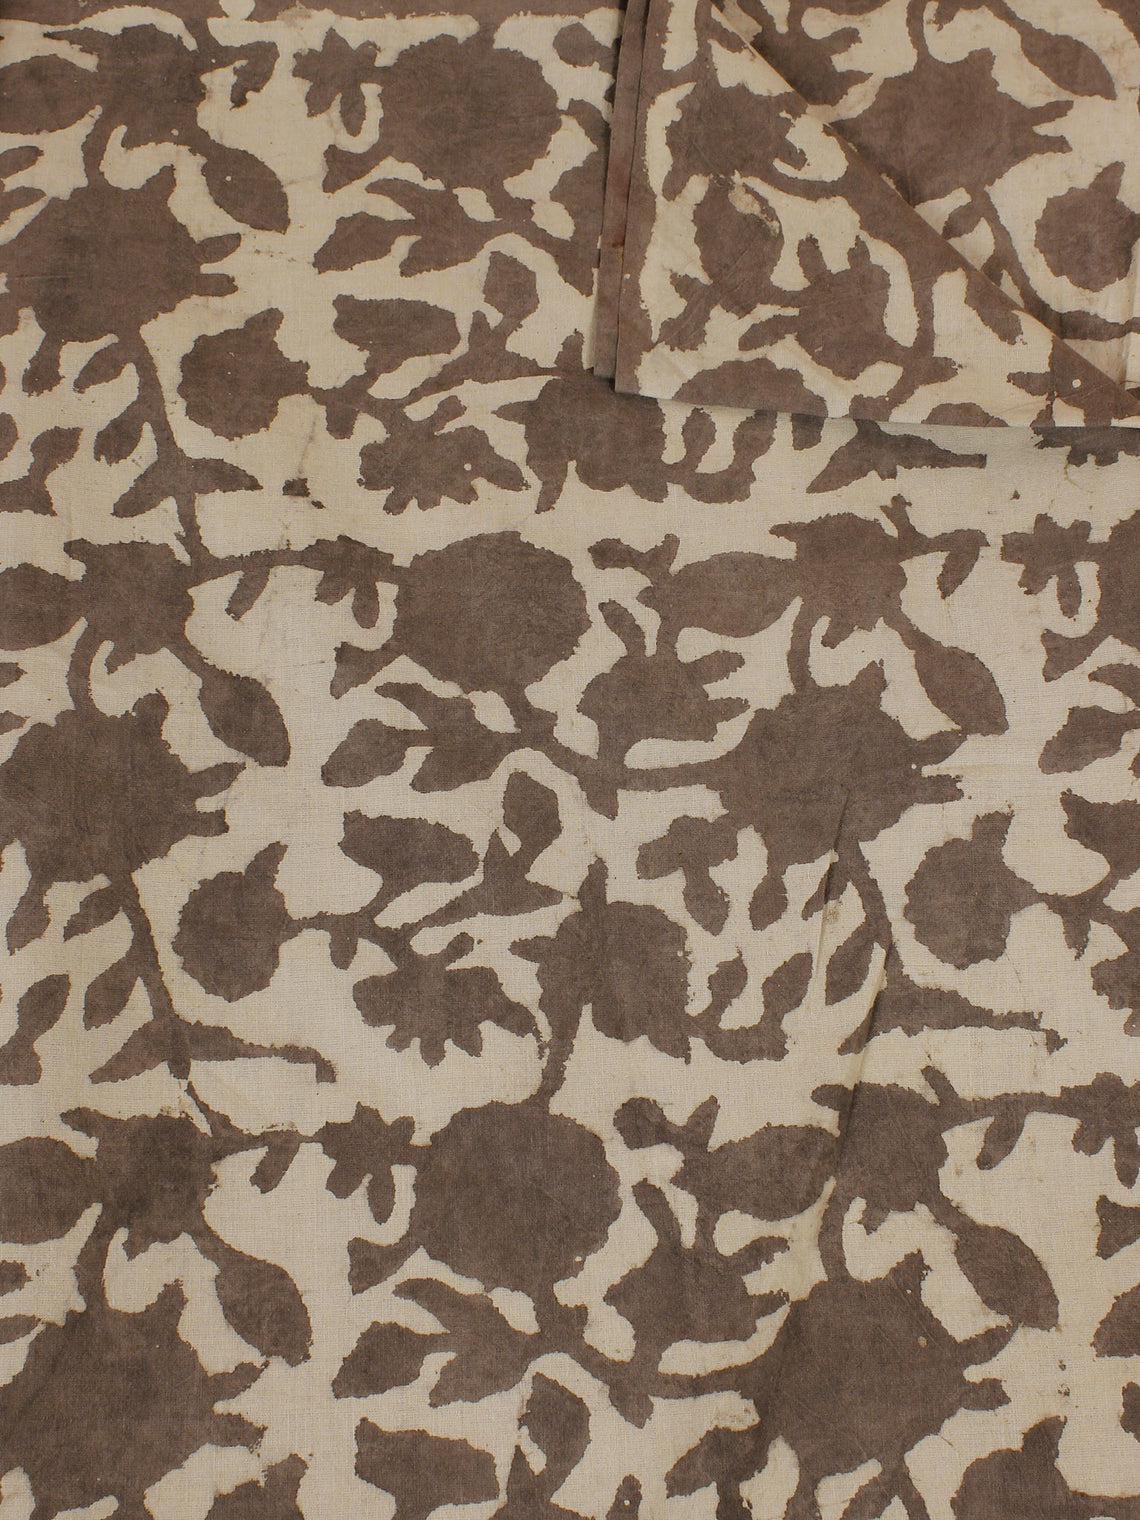 Beige Ivory Hand Block Printed Cotton Cambric Fabric Per Meter - F0916120